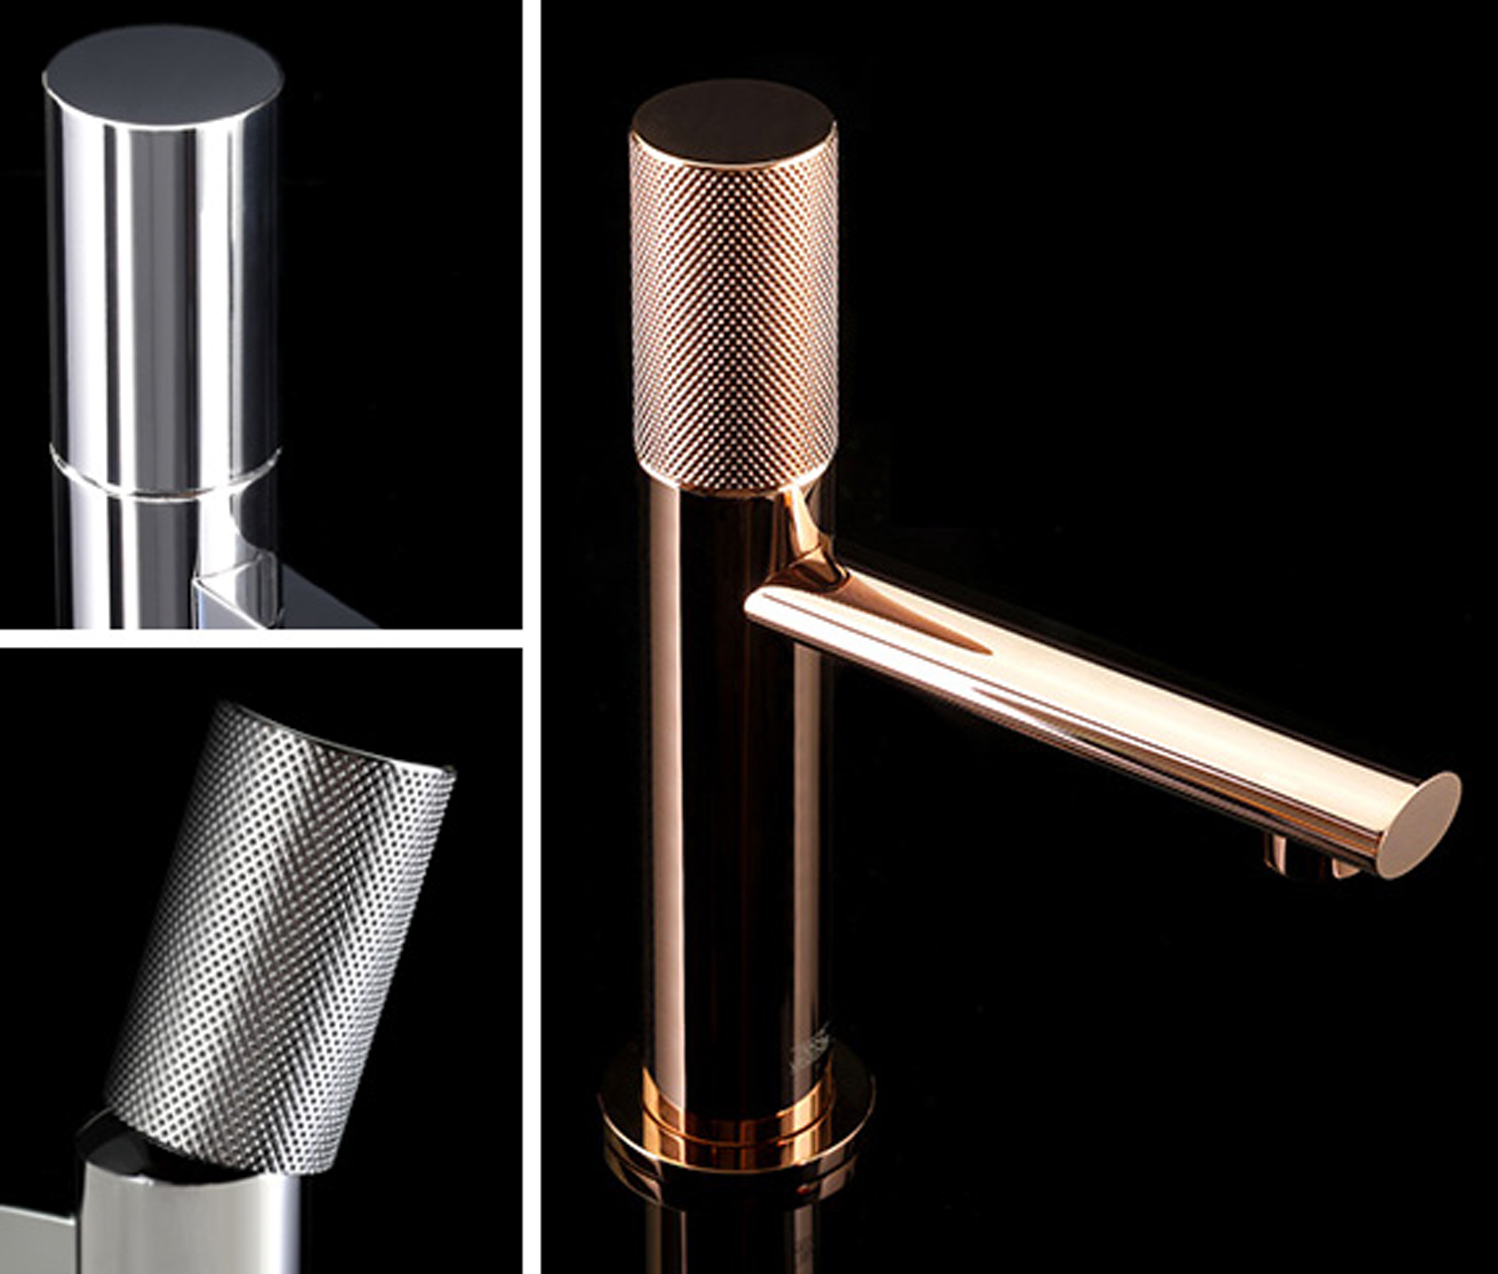 Franz Viegener debuted two new single hole faucets, both additions to the Lollipop and Nerea series.